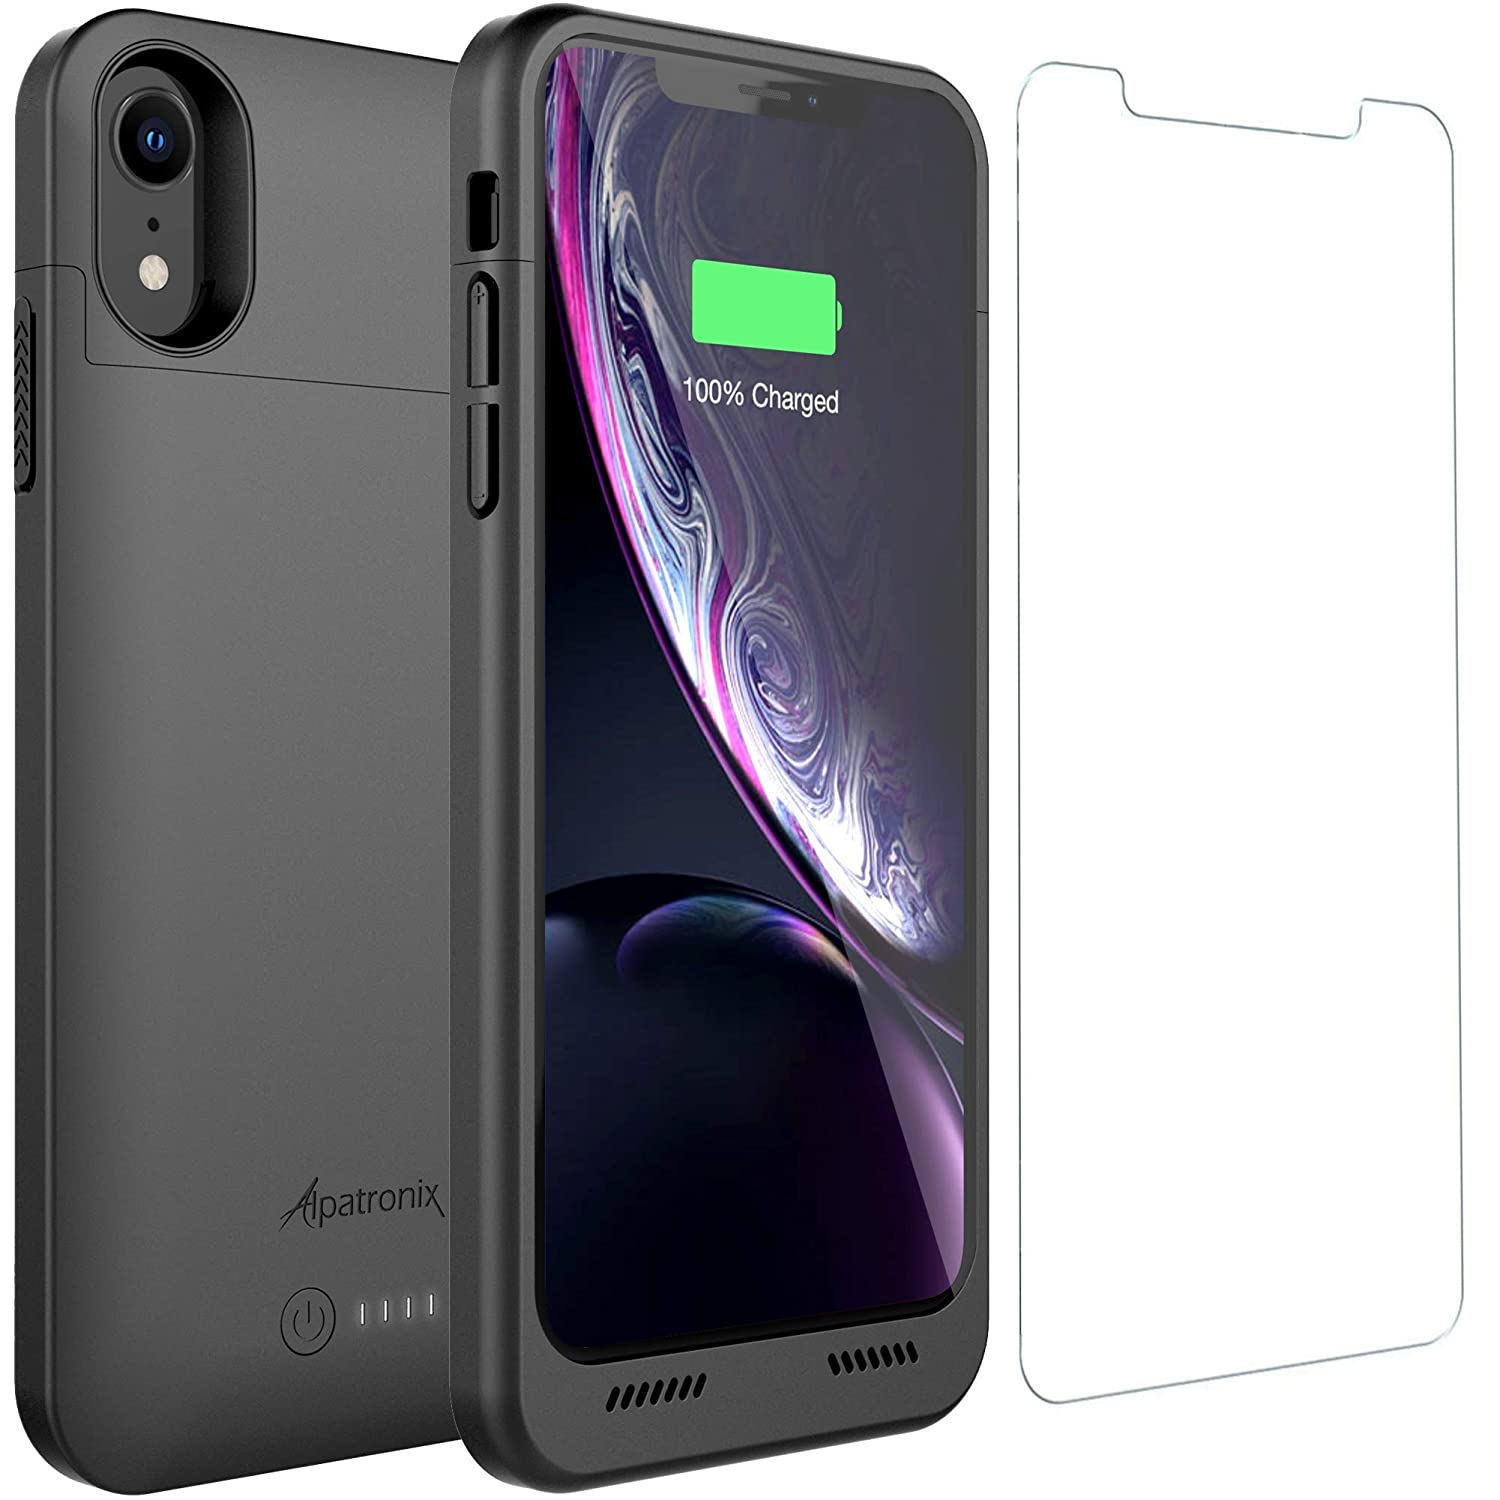 iPhone XR Battery Case with Qi Wireless Charging Compatibility, Alpatronix BXXr 6.1-inch 5000mAh Rechargeable Protective Extended Portable Charger for Apple iPhone XR Juice Bank Power Case - Black